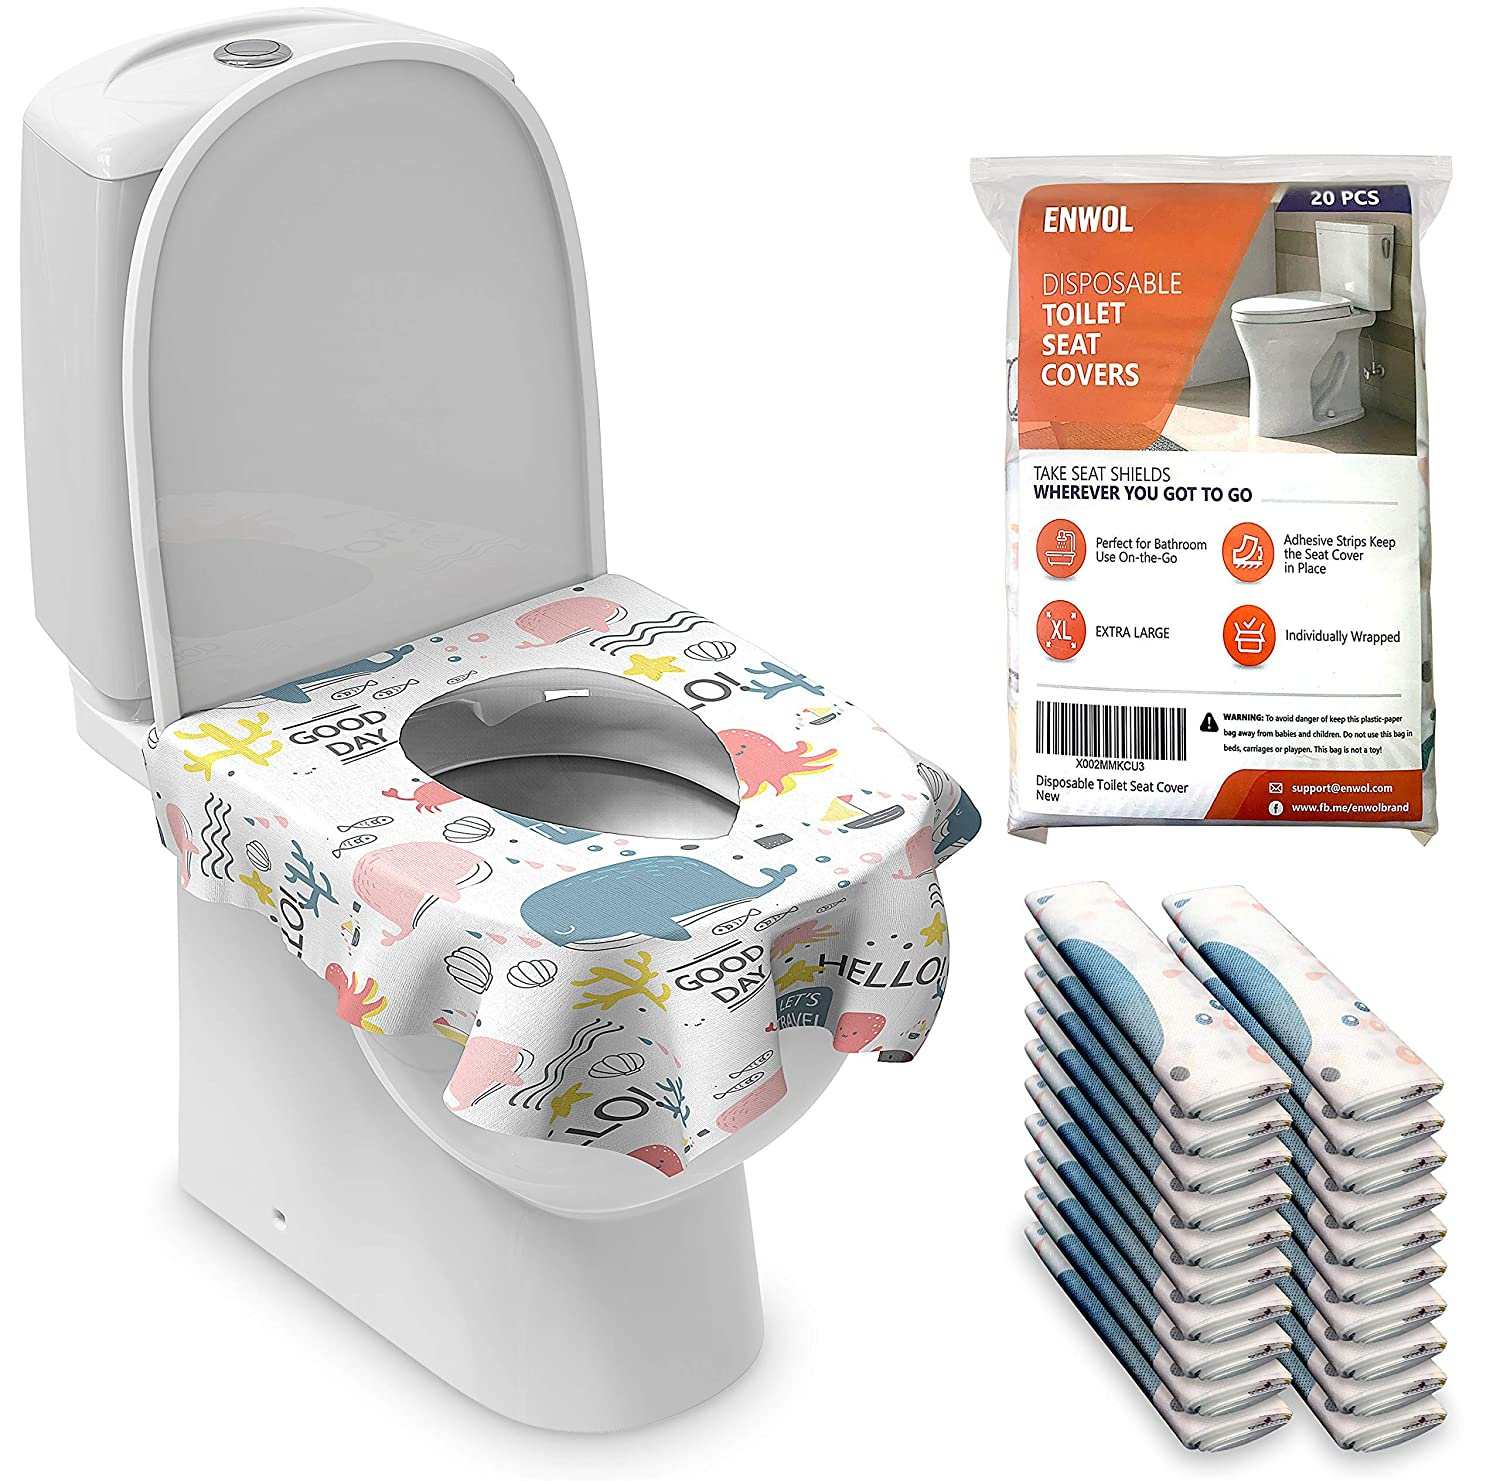 XL Toilet Seat Covers Disposable for Max 83% OFF - 20 Max 65% OFF Kids Pack Fu Toddler